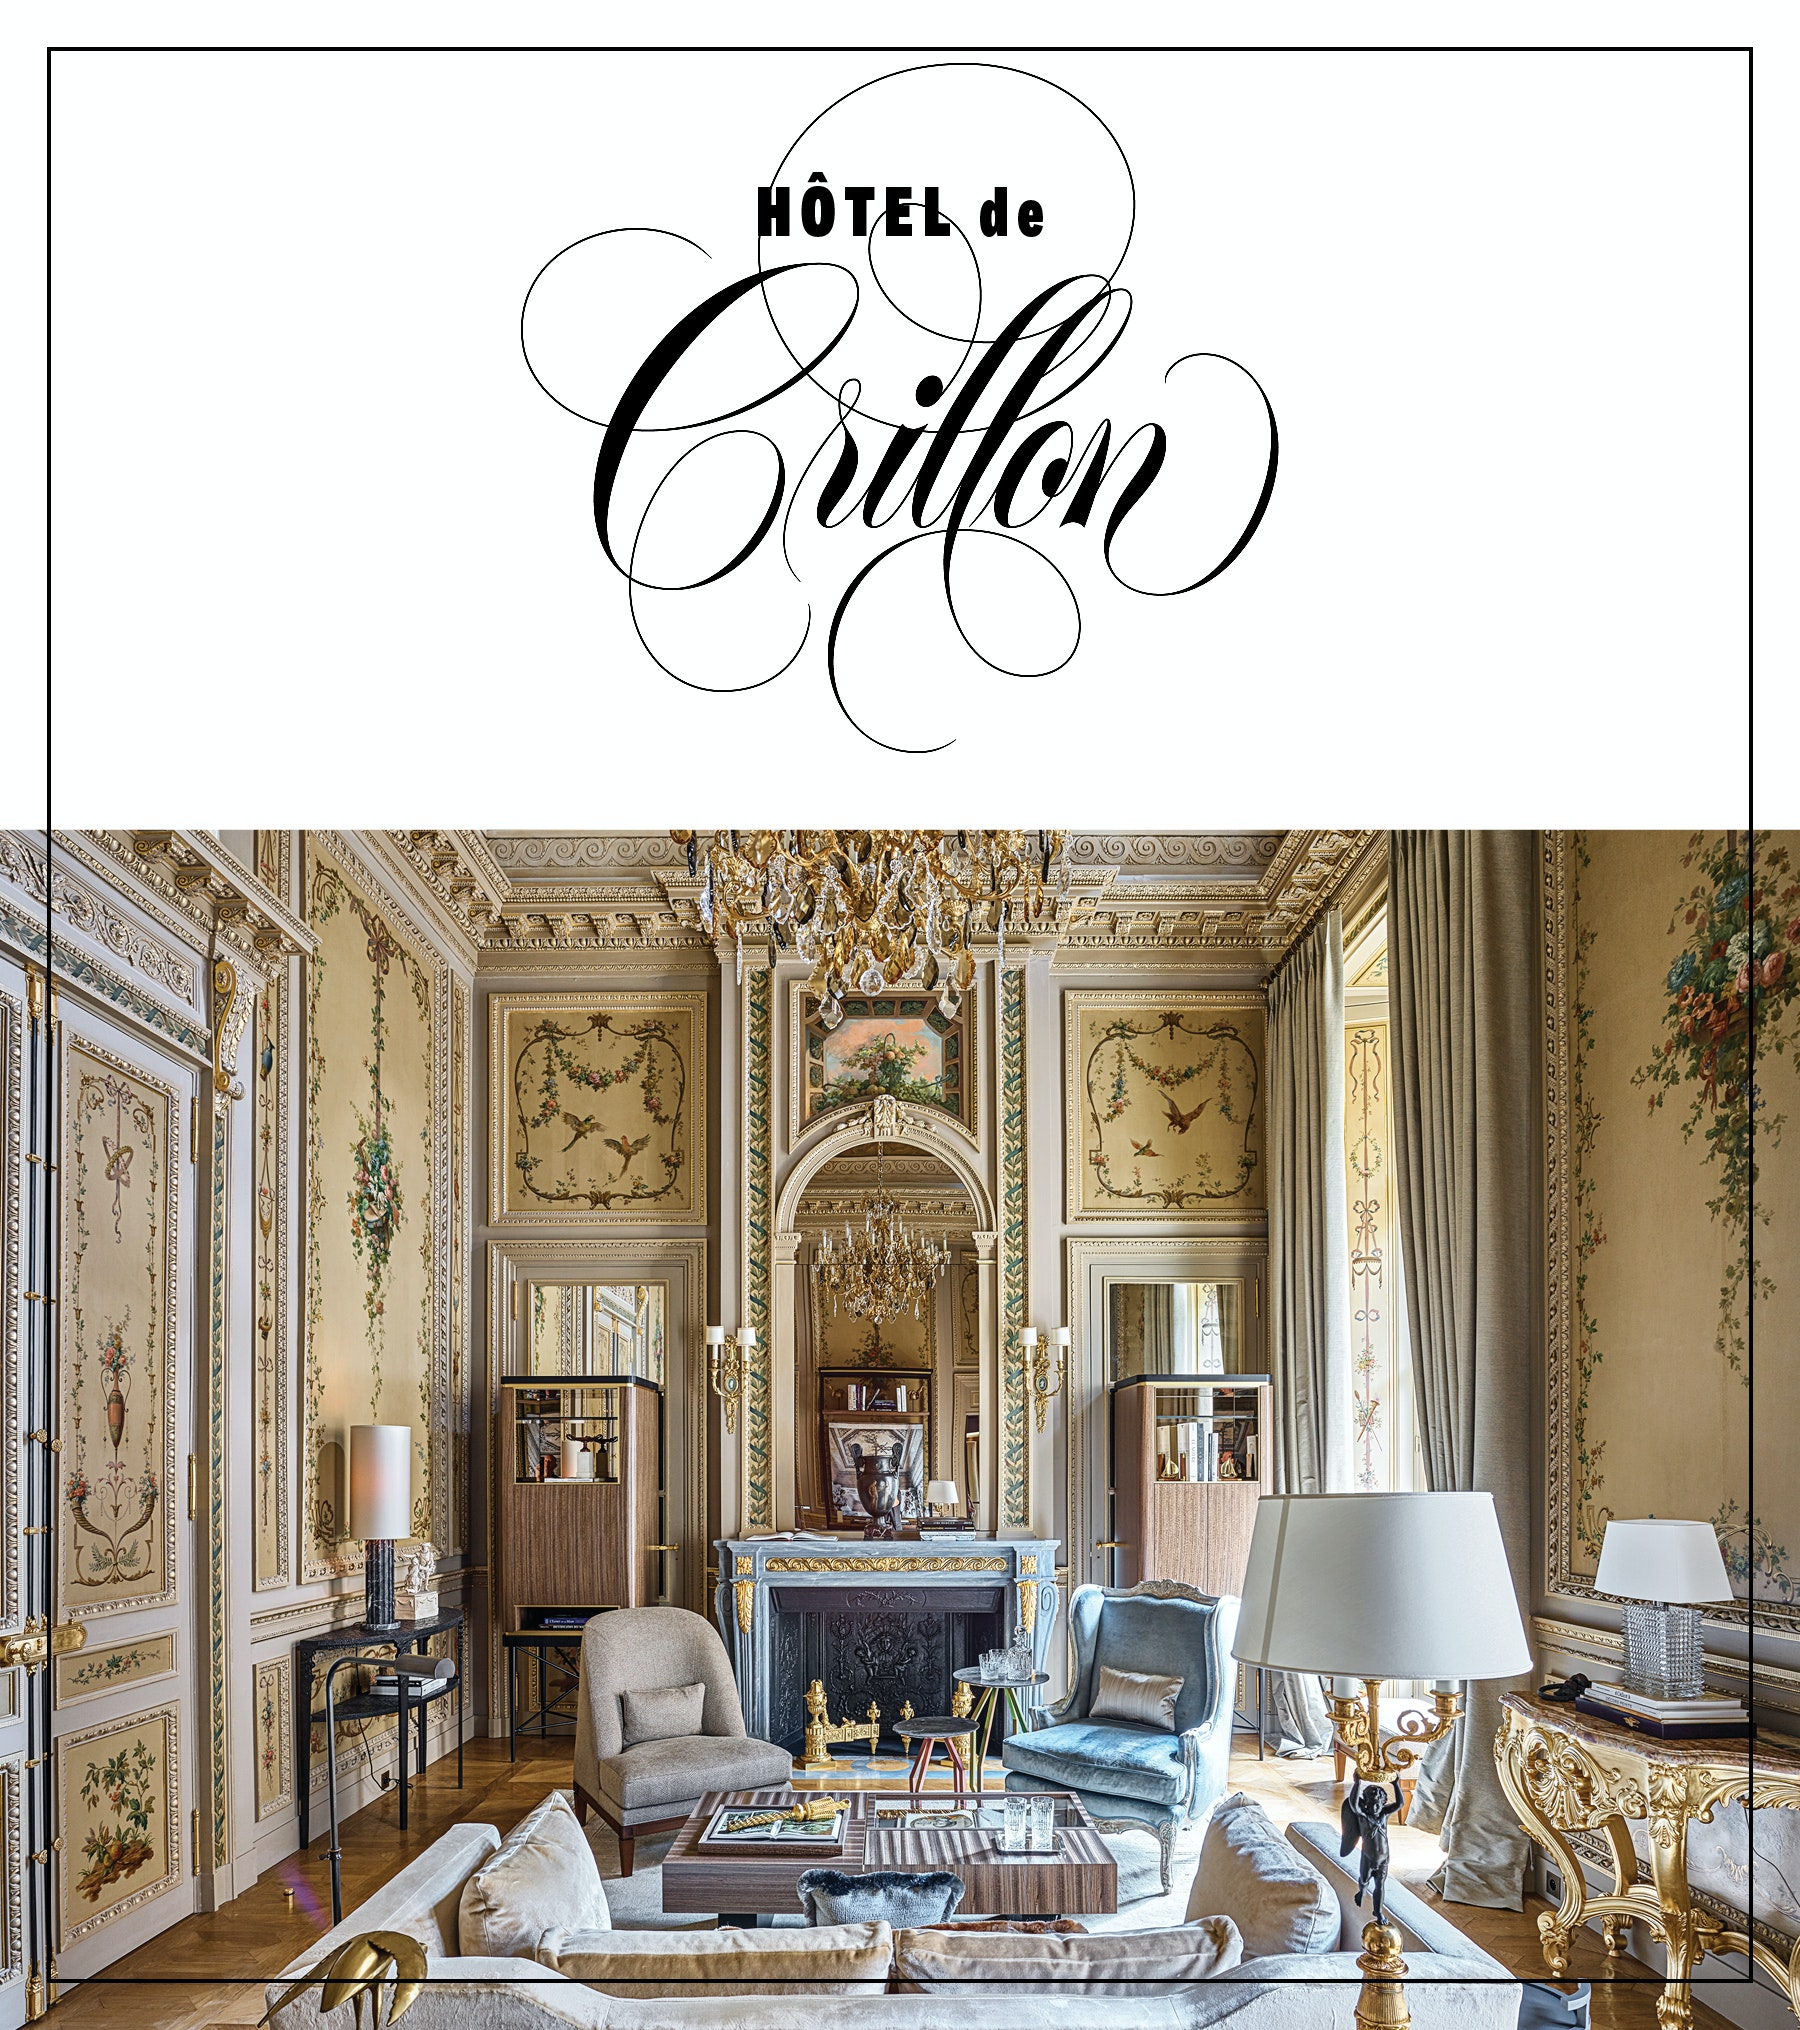 This palace renovation proves Paris is still the capital of cool (and class).